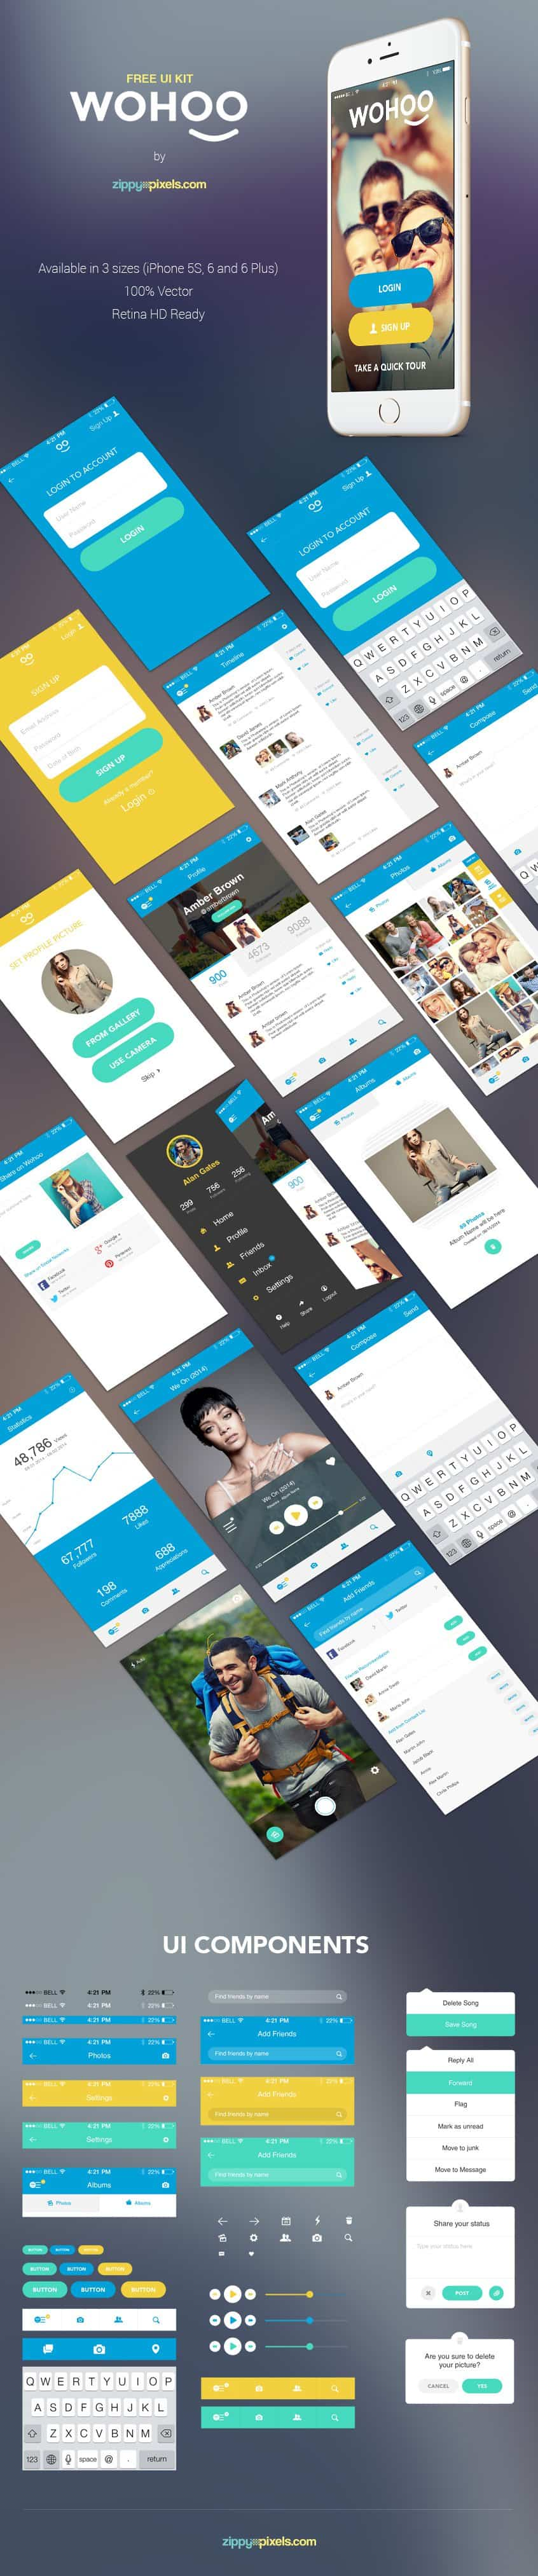 WOHOO – Free Mobile App UI KIT